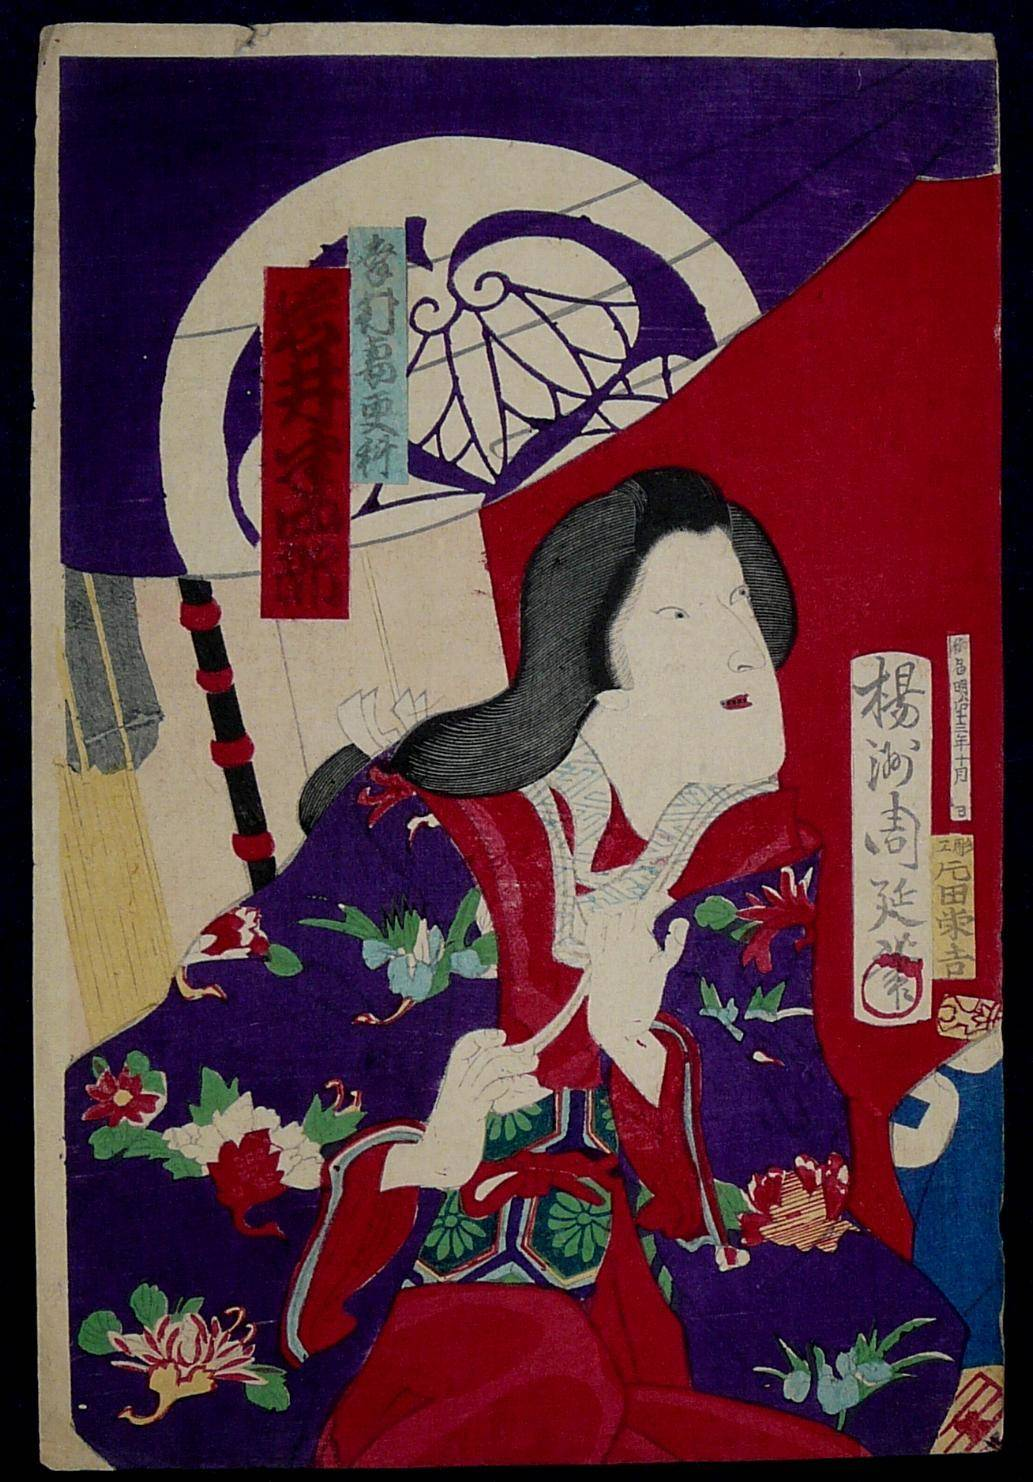 Morikawa Chikashige: #P3573 A GEISHA SCENE FROM THE 1970s